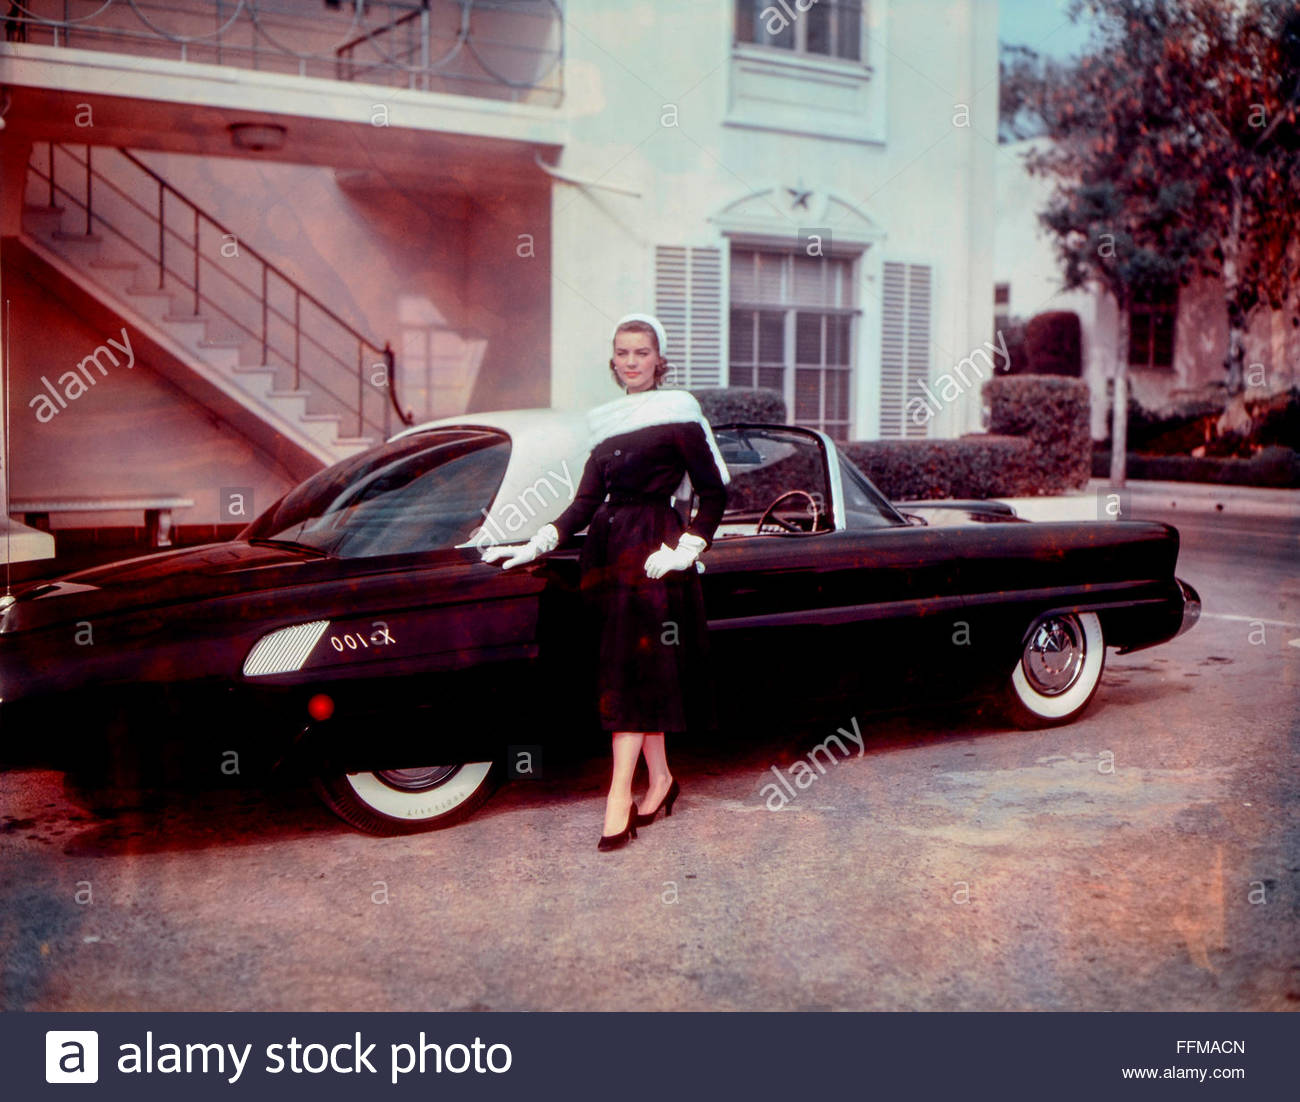 Bacall, Lauren, 16.9.1924 - 12.8.2014, American actress, full-length, with Ford X-100, photocall for the movie 'Woman's - Stock Image